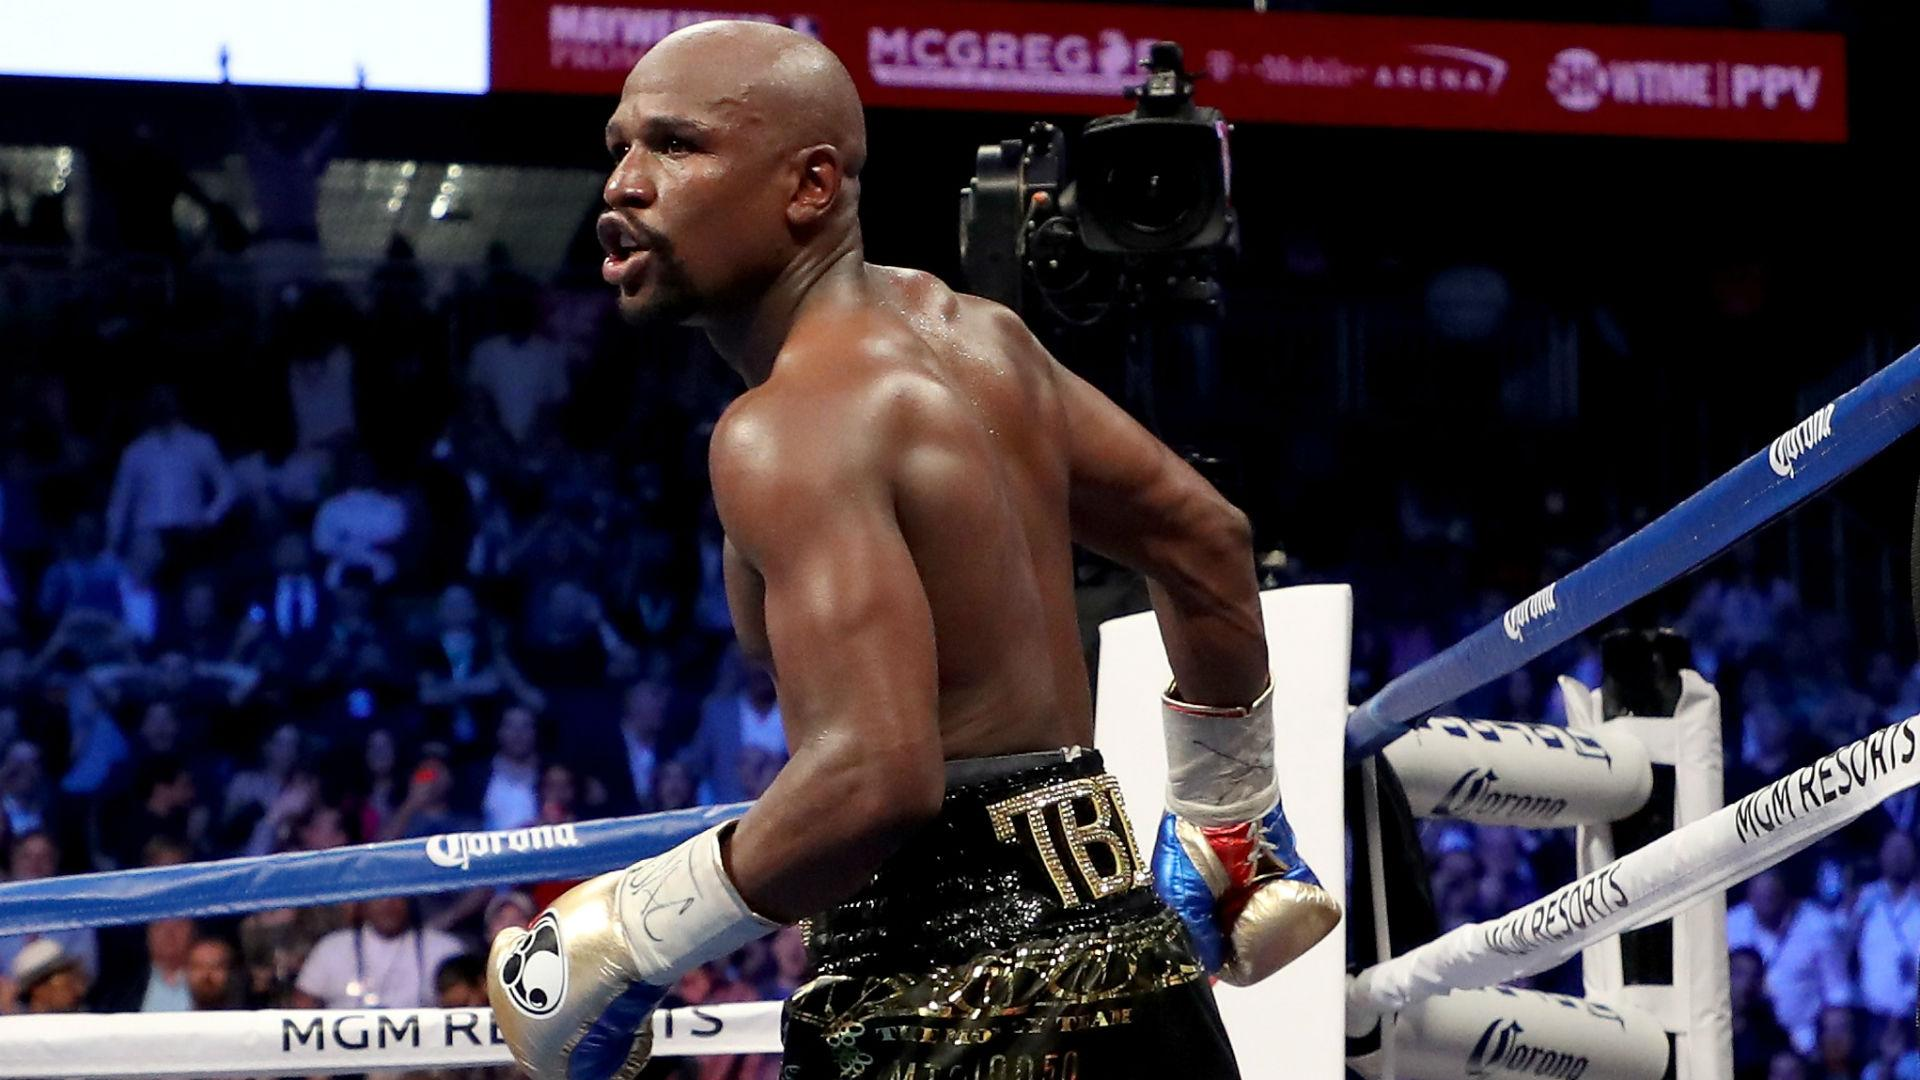 Get the chequebook out! - Mayweather talks up potential Khabib clash